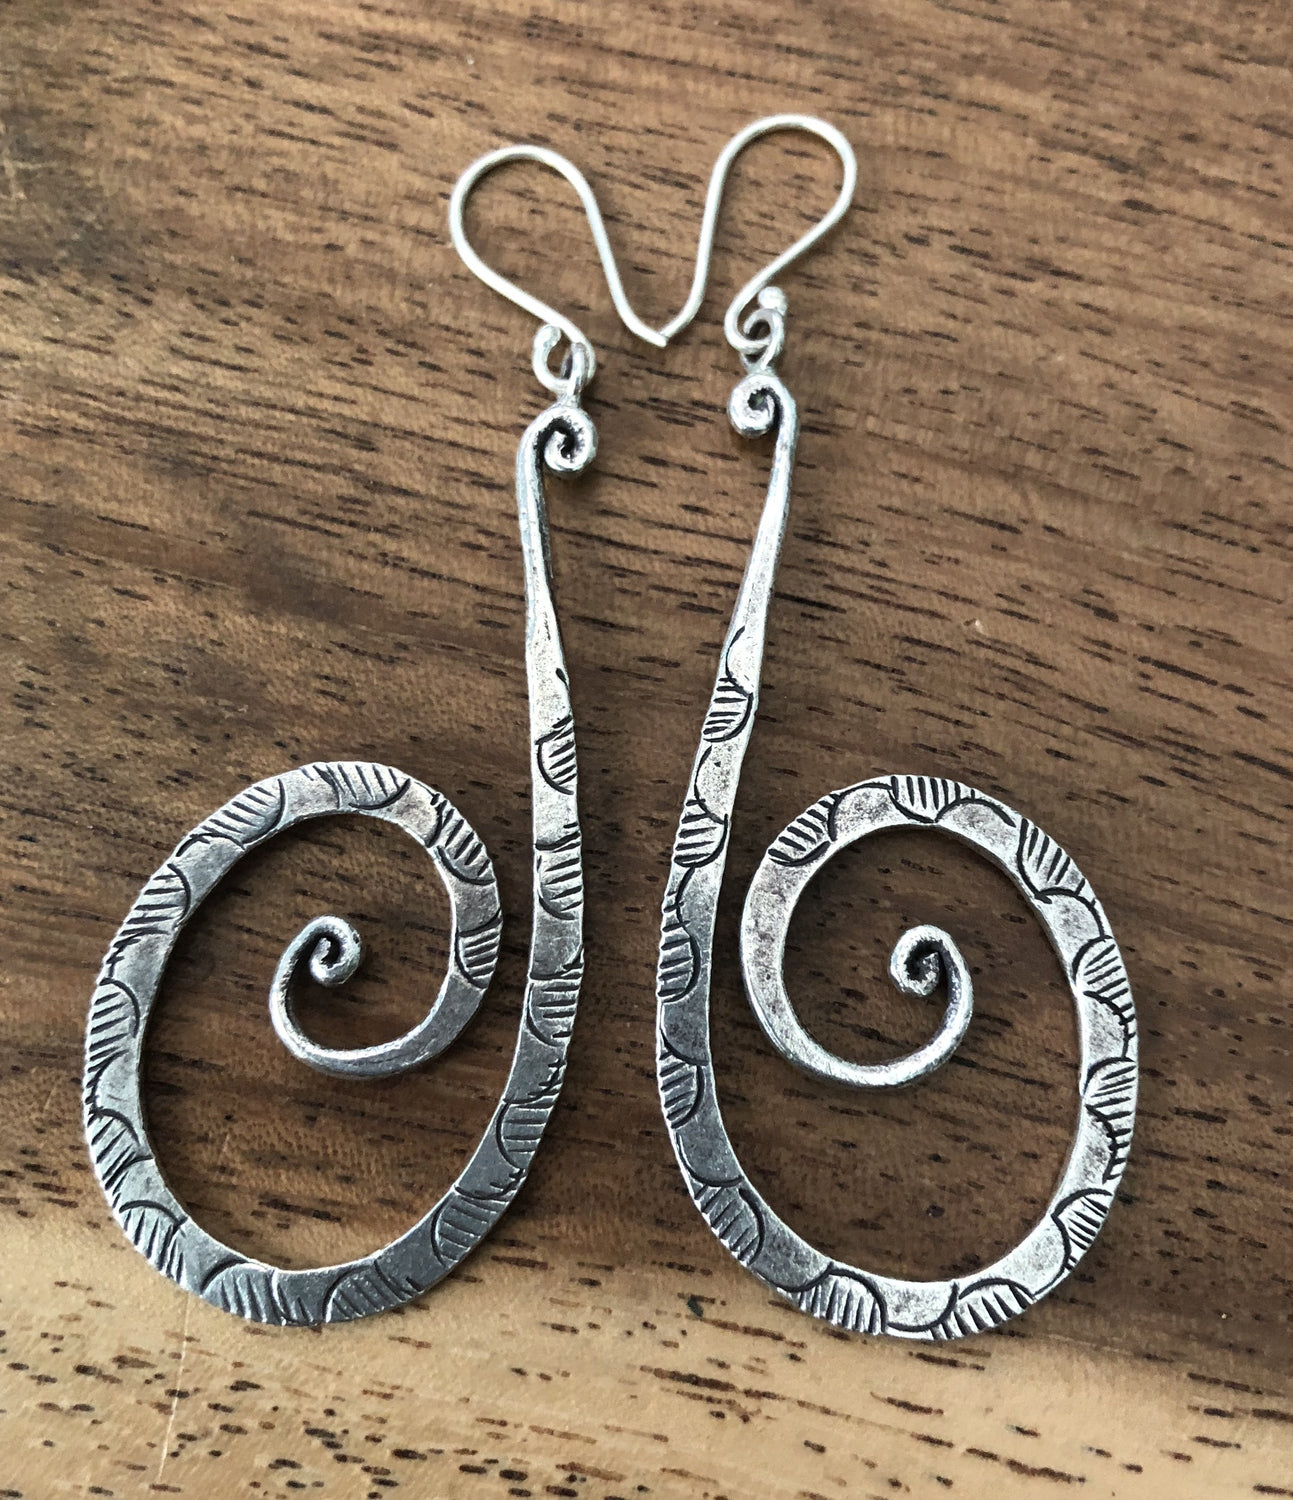 Handmade Sterling Silver Thai Hilltribe Long Spiral Earrings